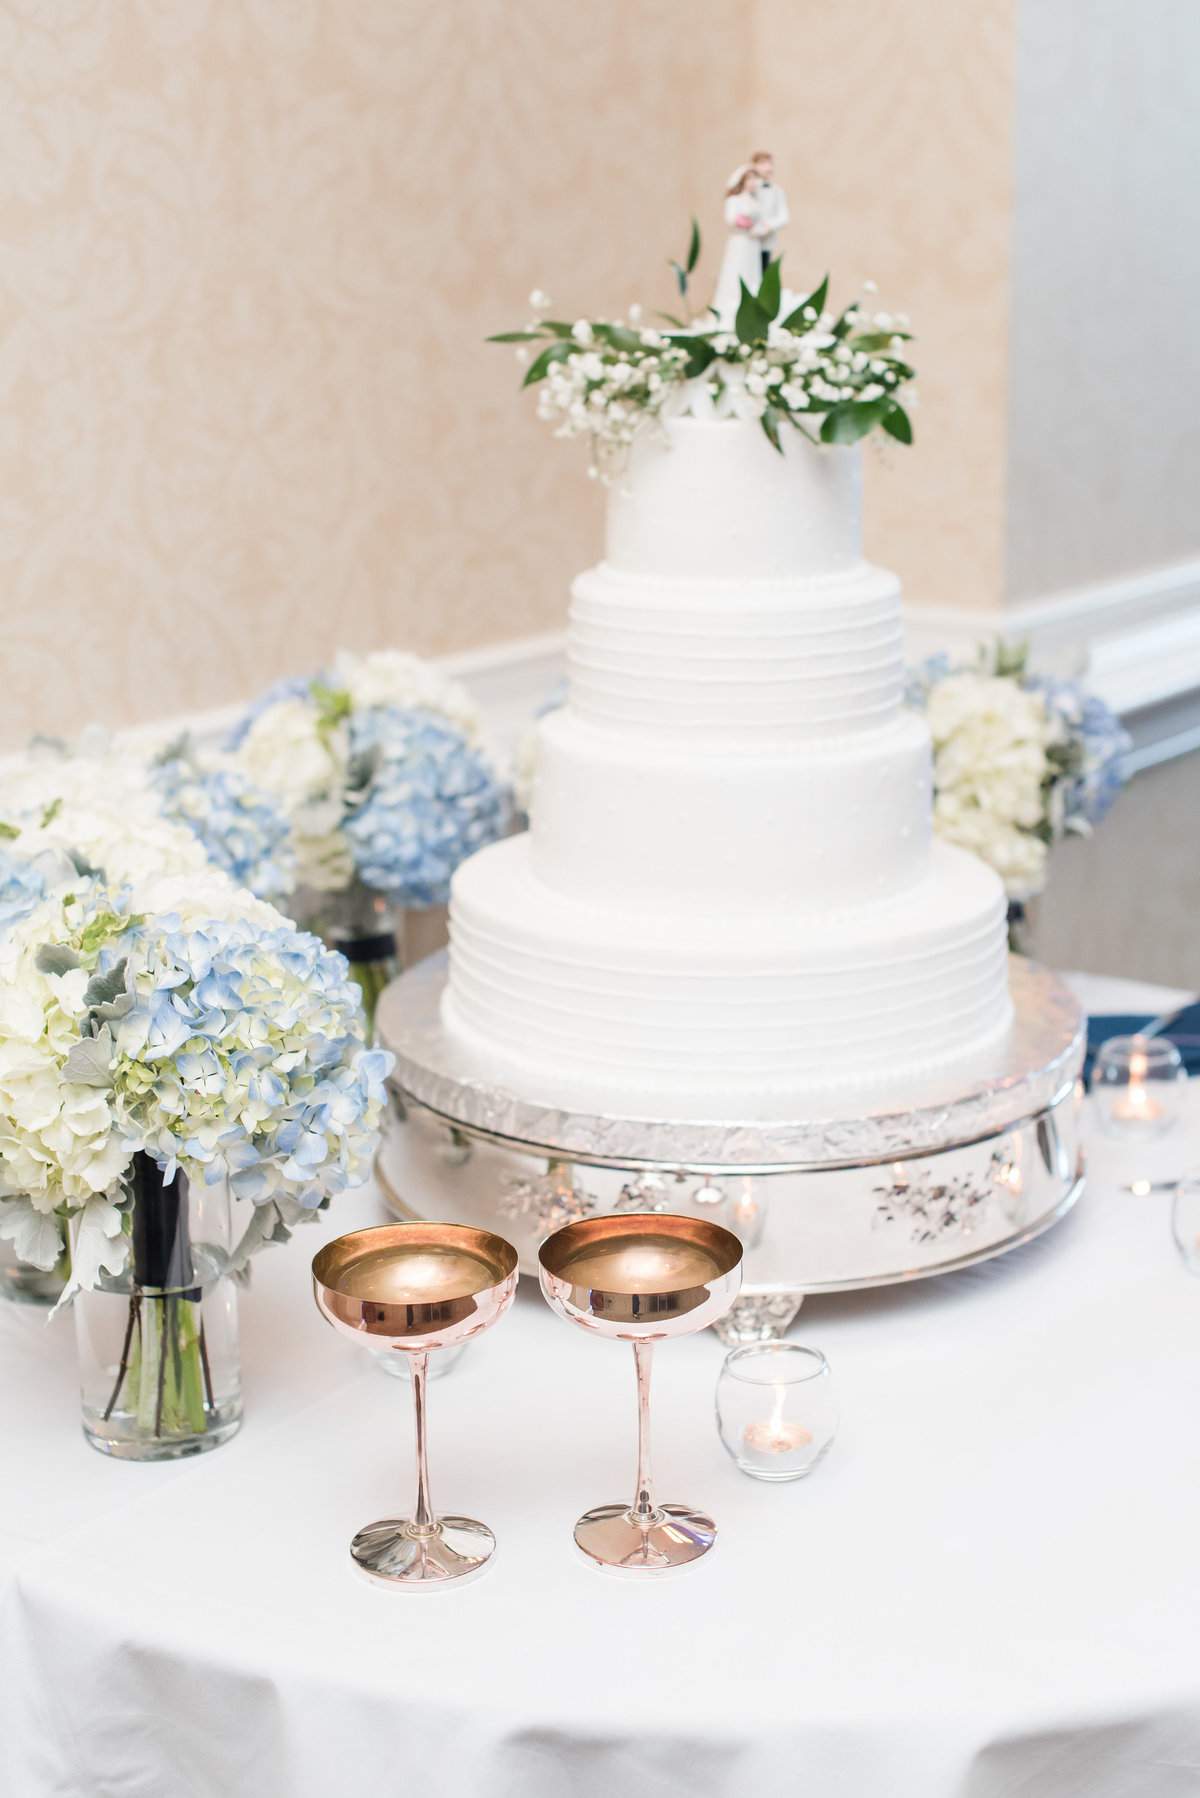 a white four tiered layered wedding cake with blue and white hydrangeas surrounding the cake with old vintage champagne glasses at North Hills Country Club in Raleigh NC